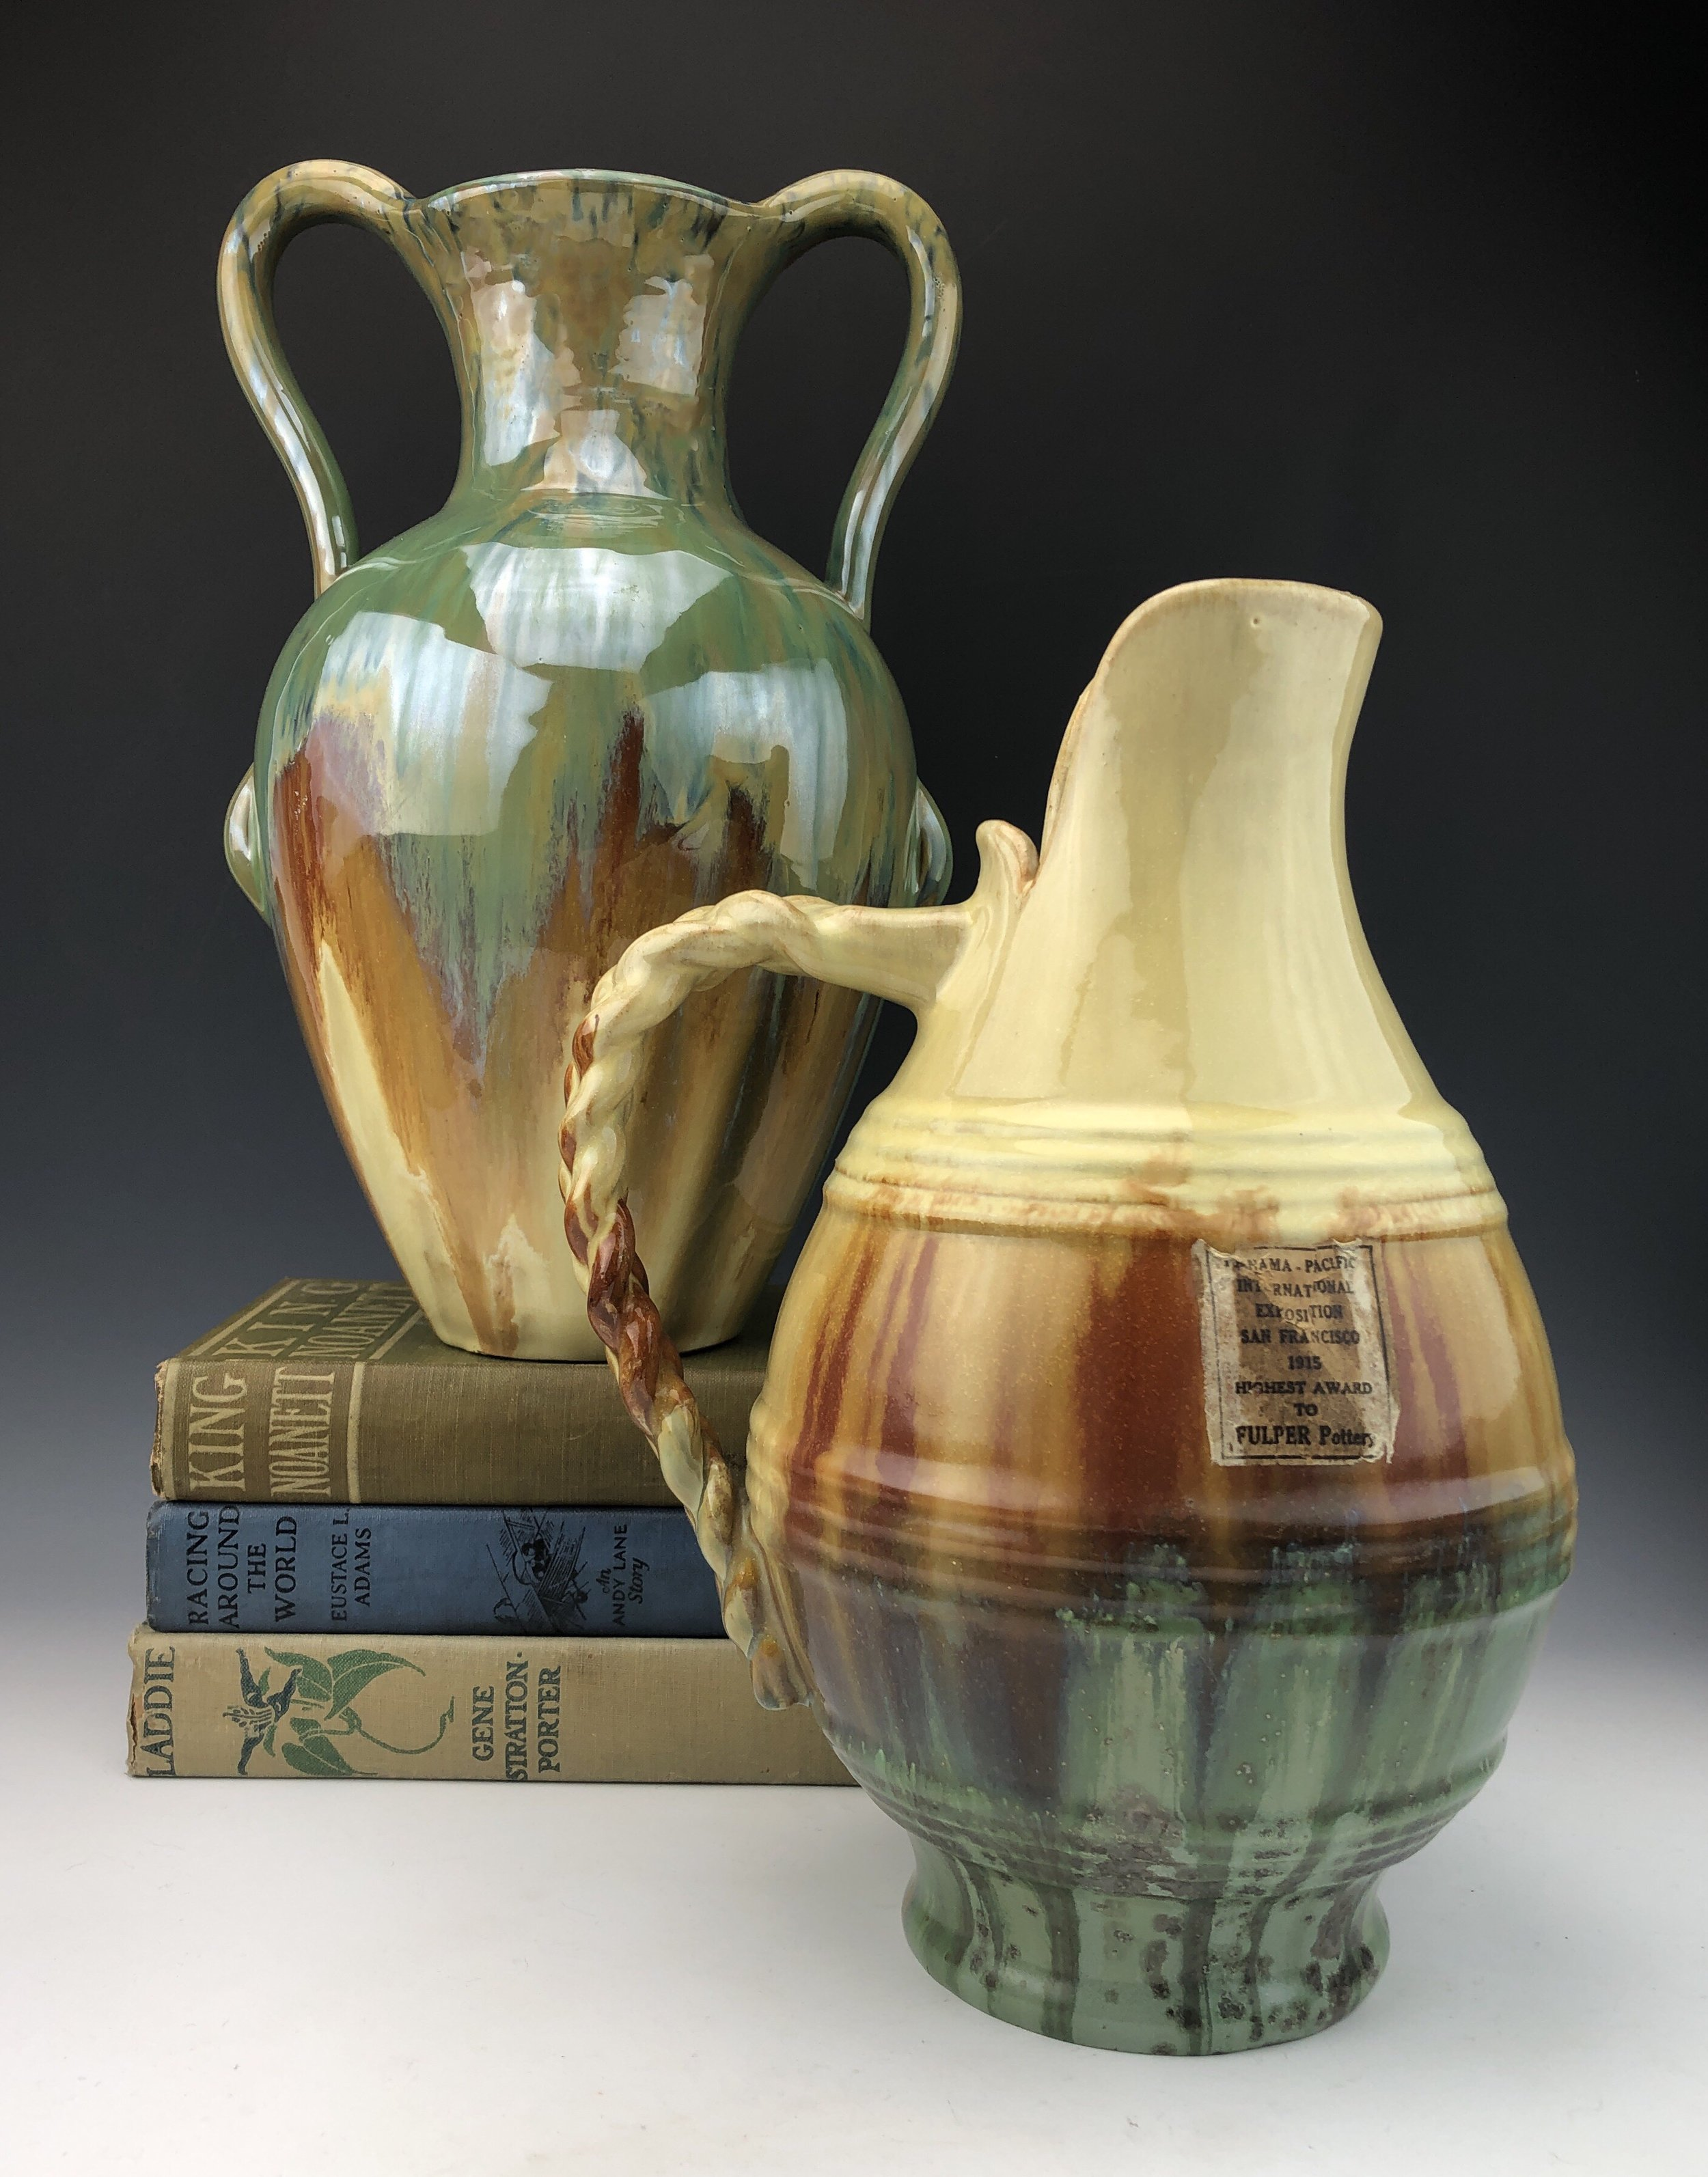 Frank Ross - Once Again - Frank Ross specializes in fine ceramics from the late 19th century to the mid 20th century.